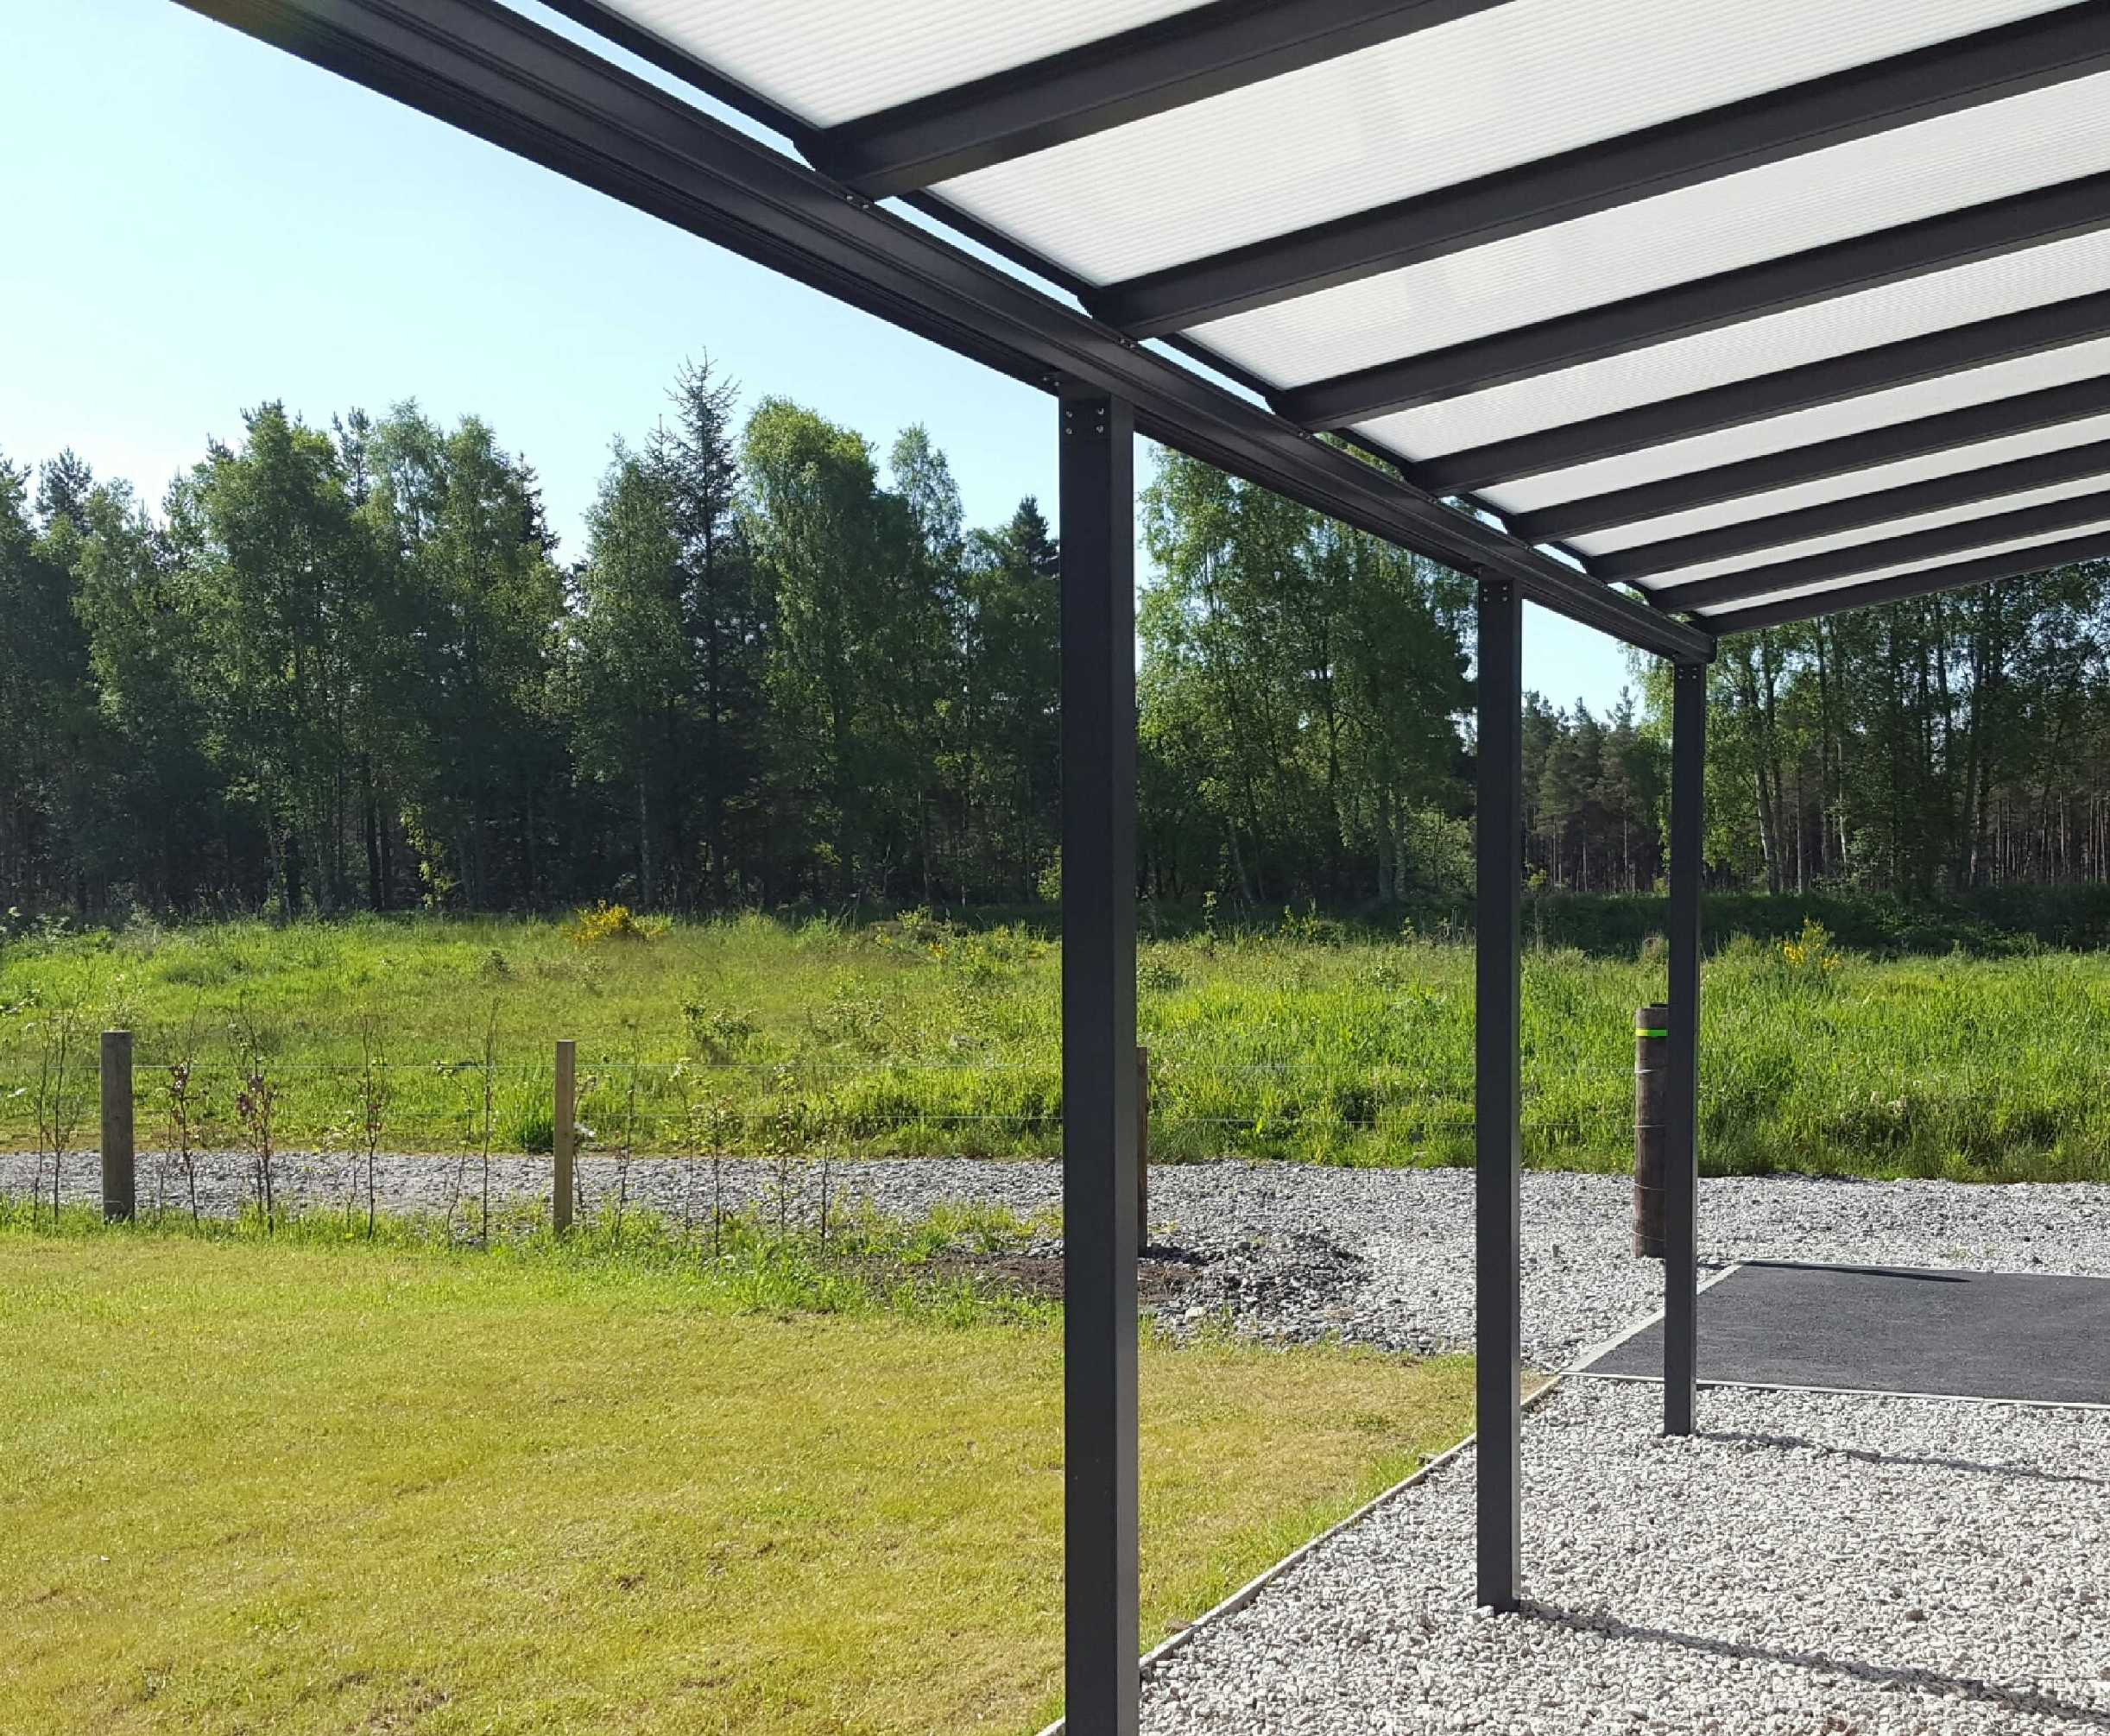 Omega Smart Lean-To Canopy, Anthracite Grey, 16mm Polycarbonate Glazing - 9.5m (W) x 3.0m (P), (5) Supporting Posts